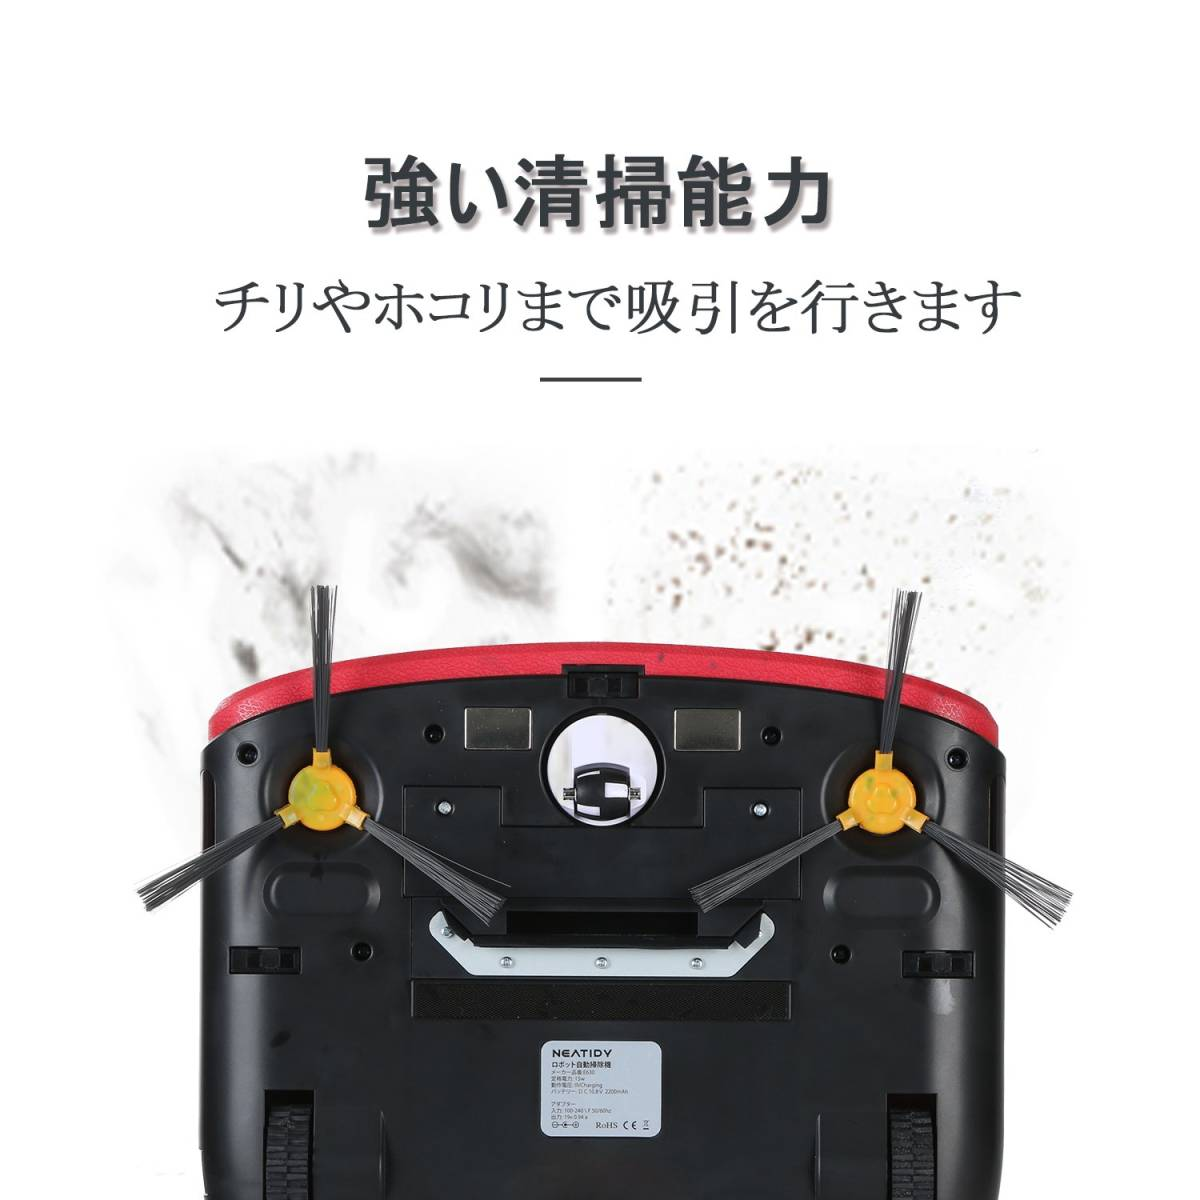 * new goods * unused * robot vacuum cleaner 6.3cm ultrathin light weight full automation Smart vacuum cleaner robot type cleaner automatic ..... robot vacuum cleaner falling prevention